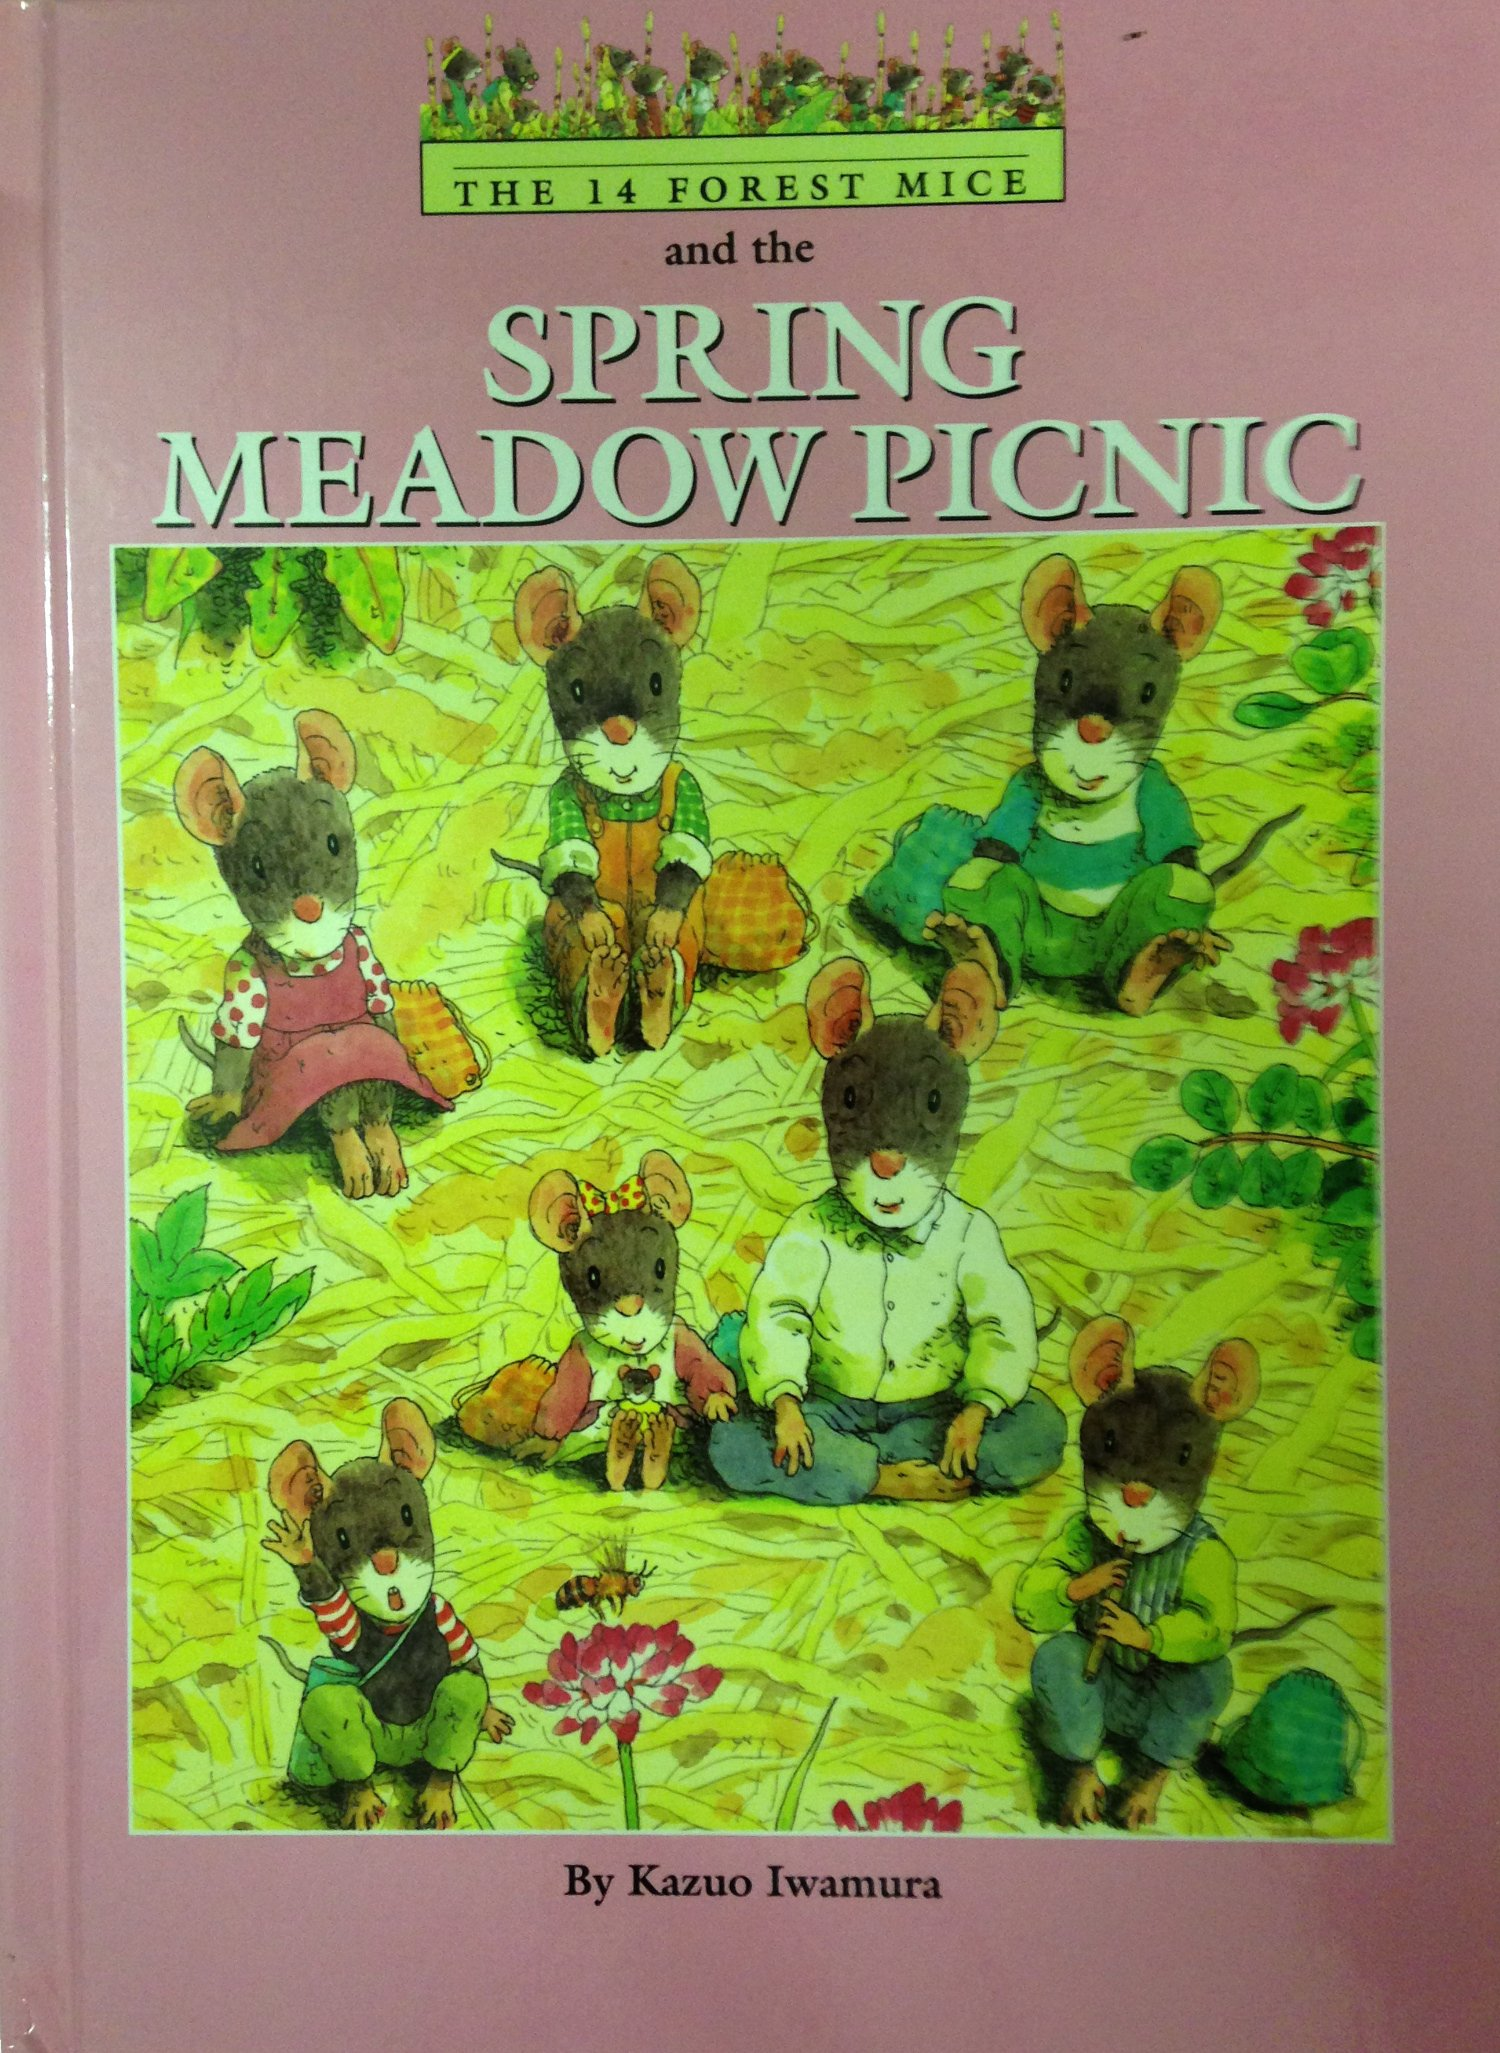 The 14 Forest Mice and the Spring Meadow Picnic: Kazuo Iwamura:  9780836811469: Amazon.com: Books